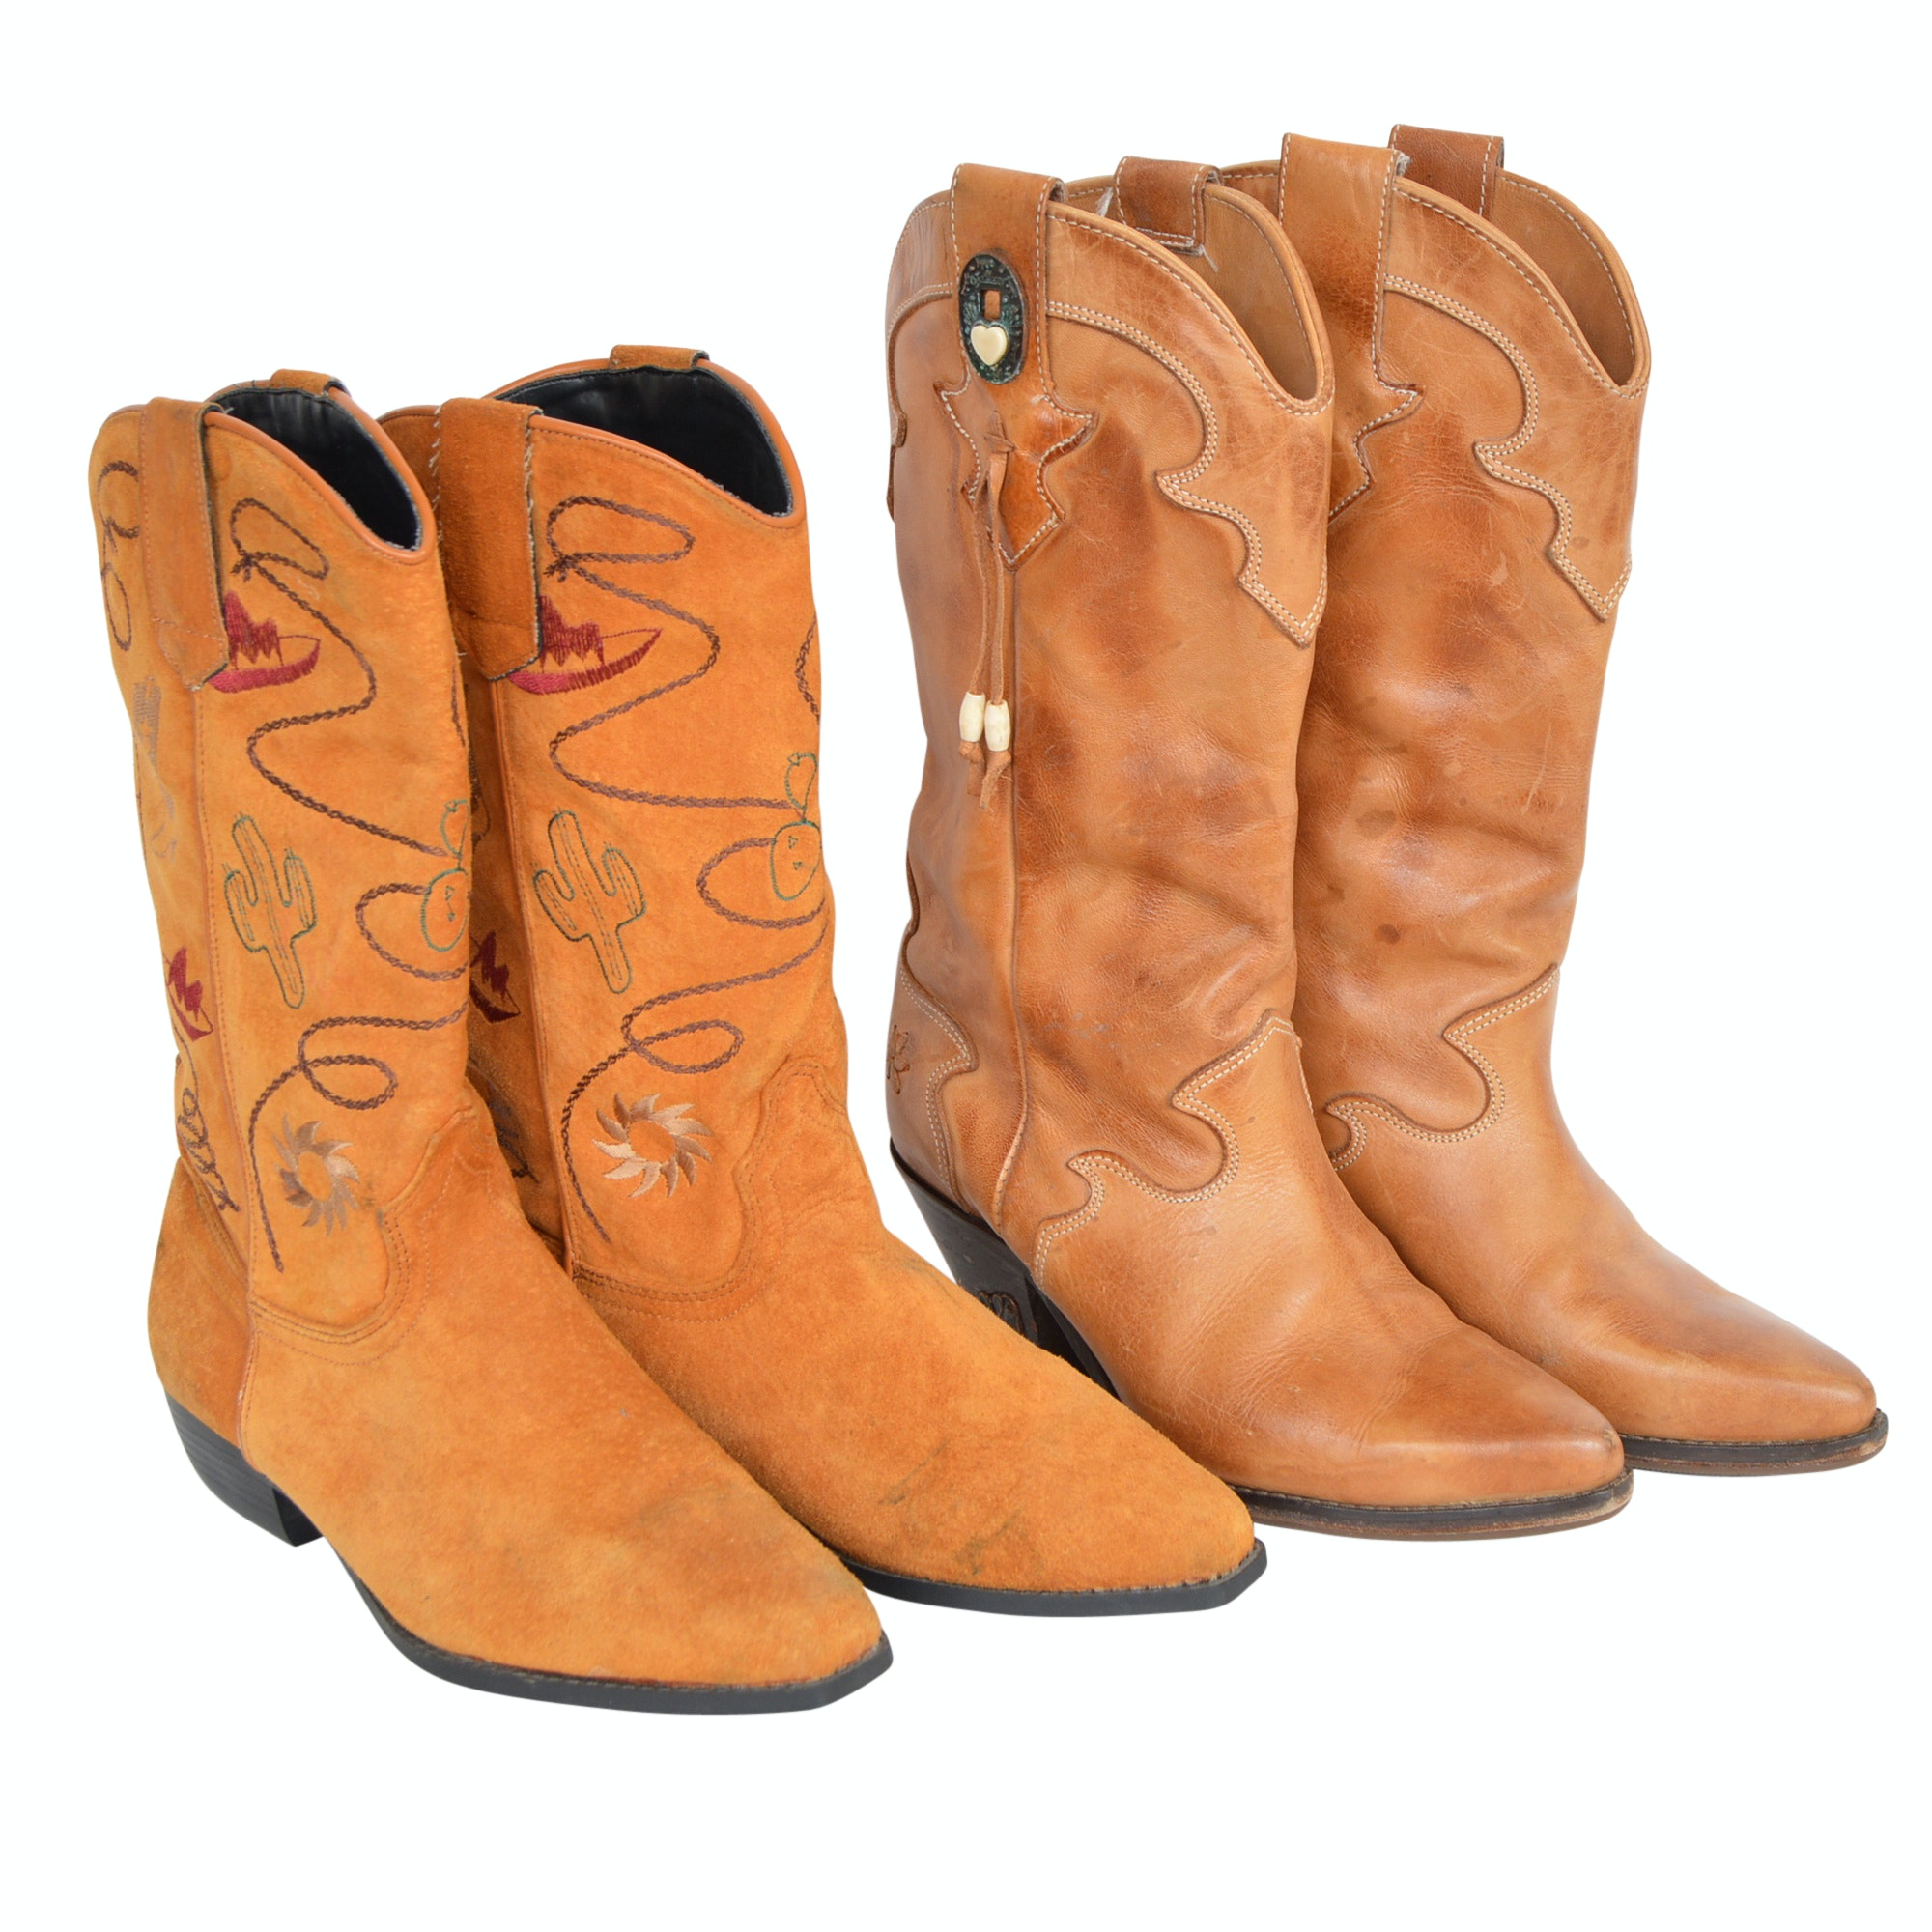 Women's Vintage Leather Western Boots